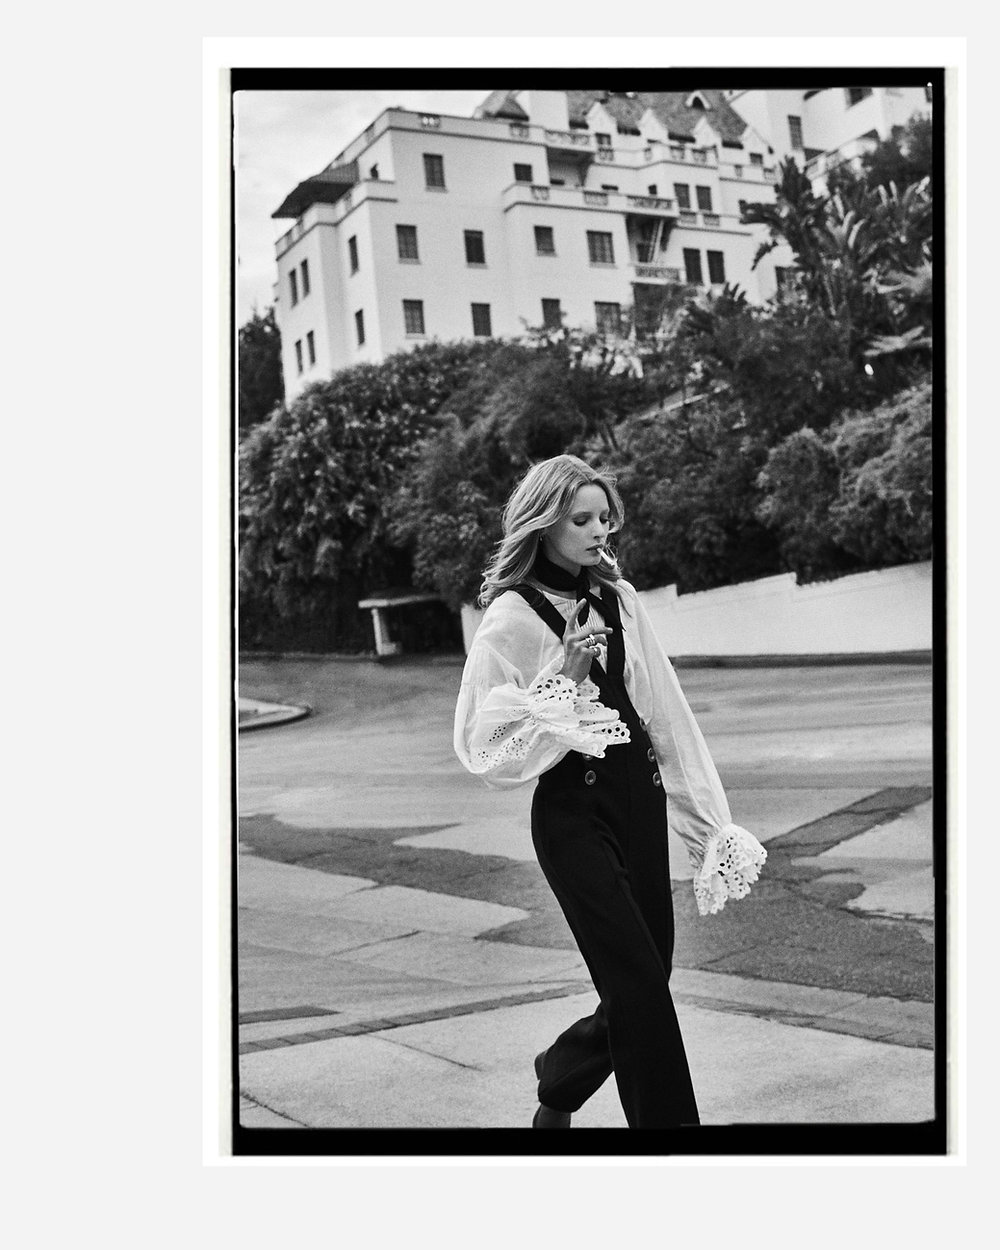 Paige Reifler, so it goes magazine. ( soitgoes, california, chateau marmont, LA, 70's, will vendramini, paige, lions agency)